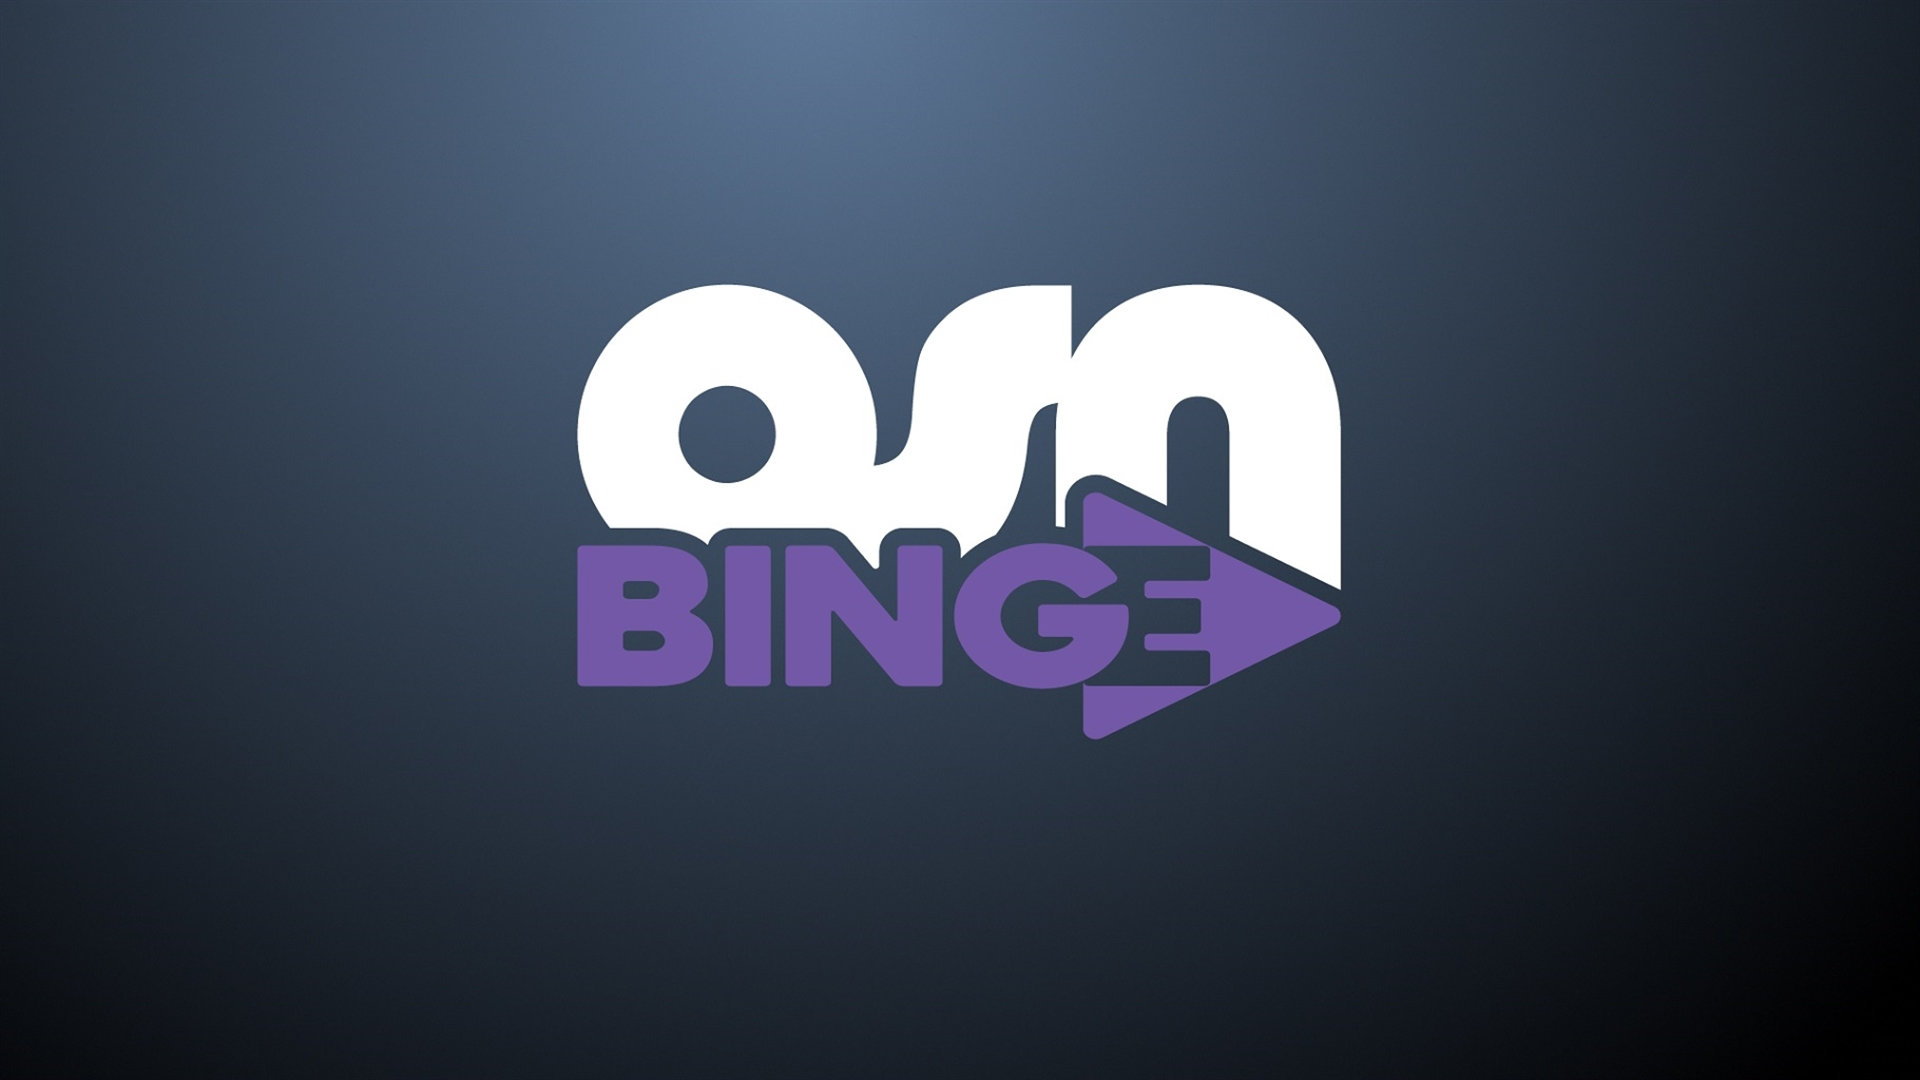 OSN launches Binge Channel with Game of Thrones marathon – Digital TV Europe